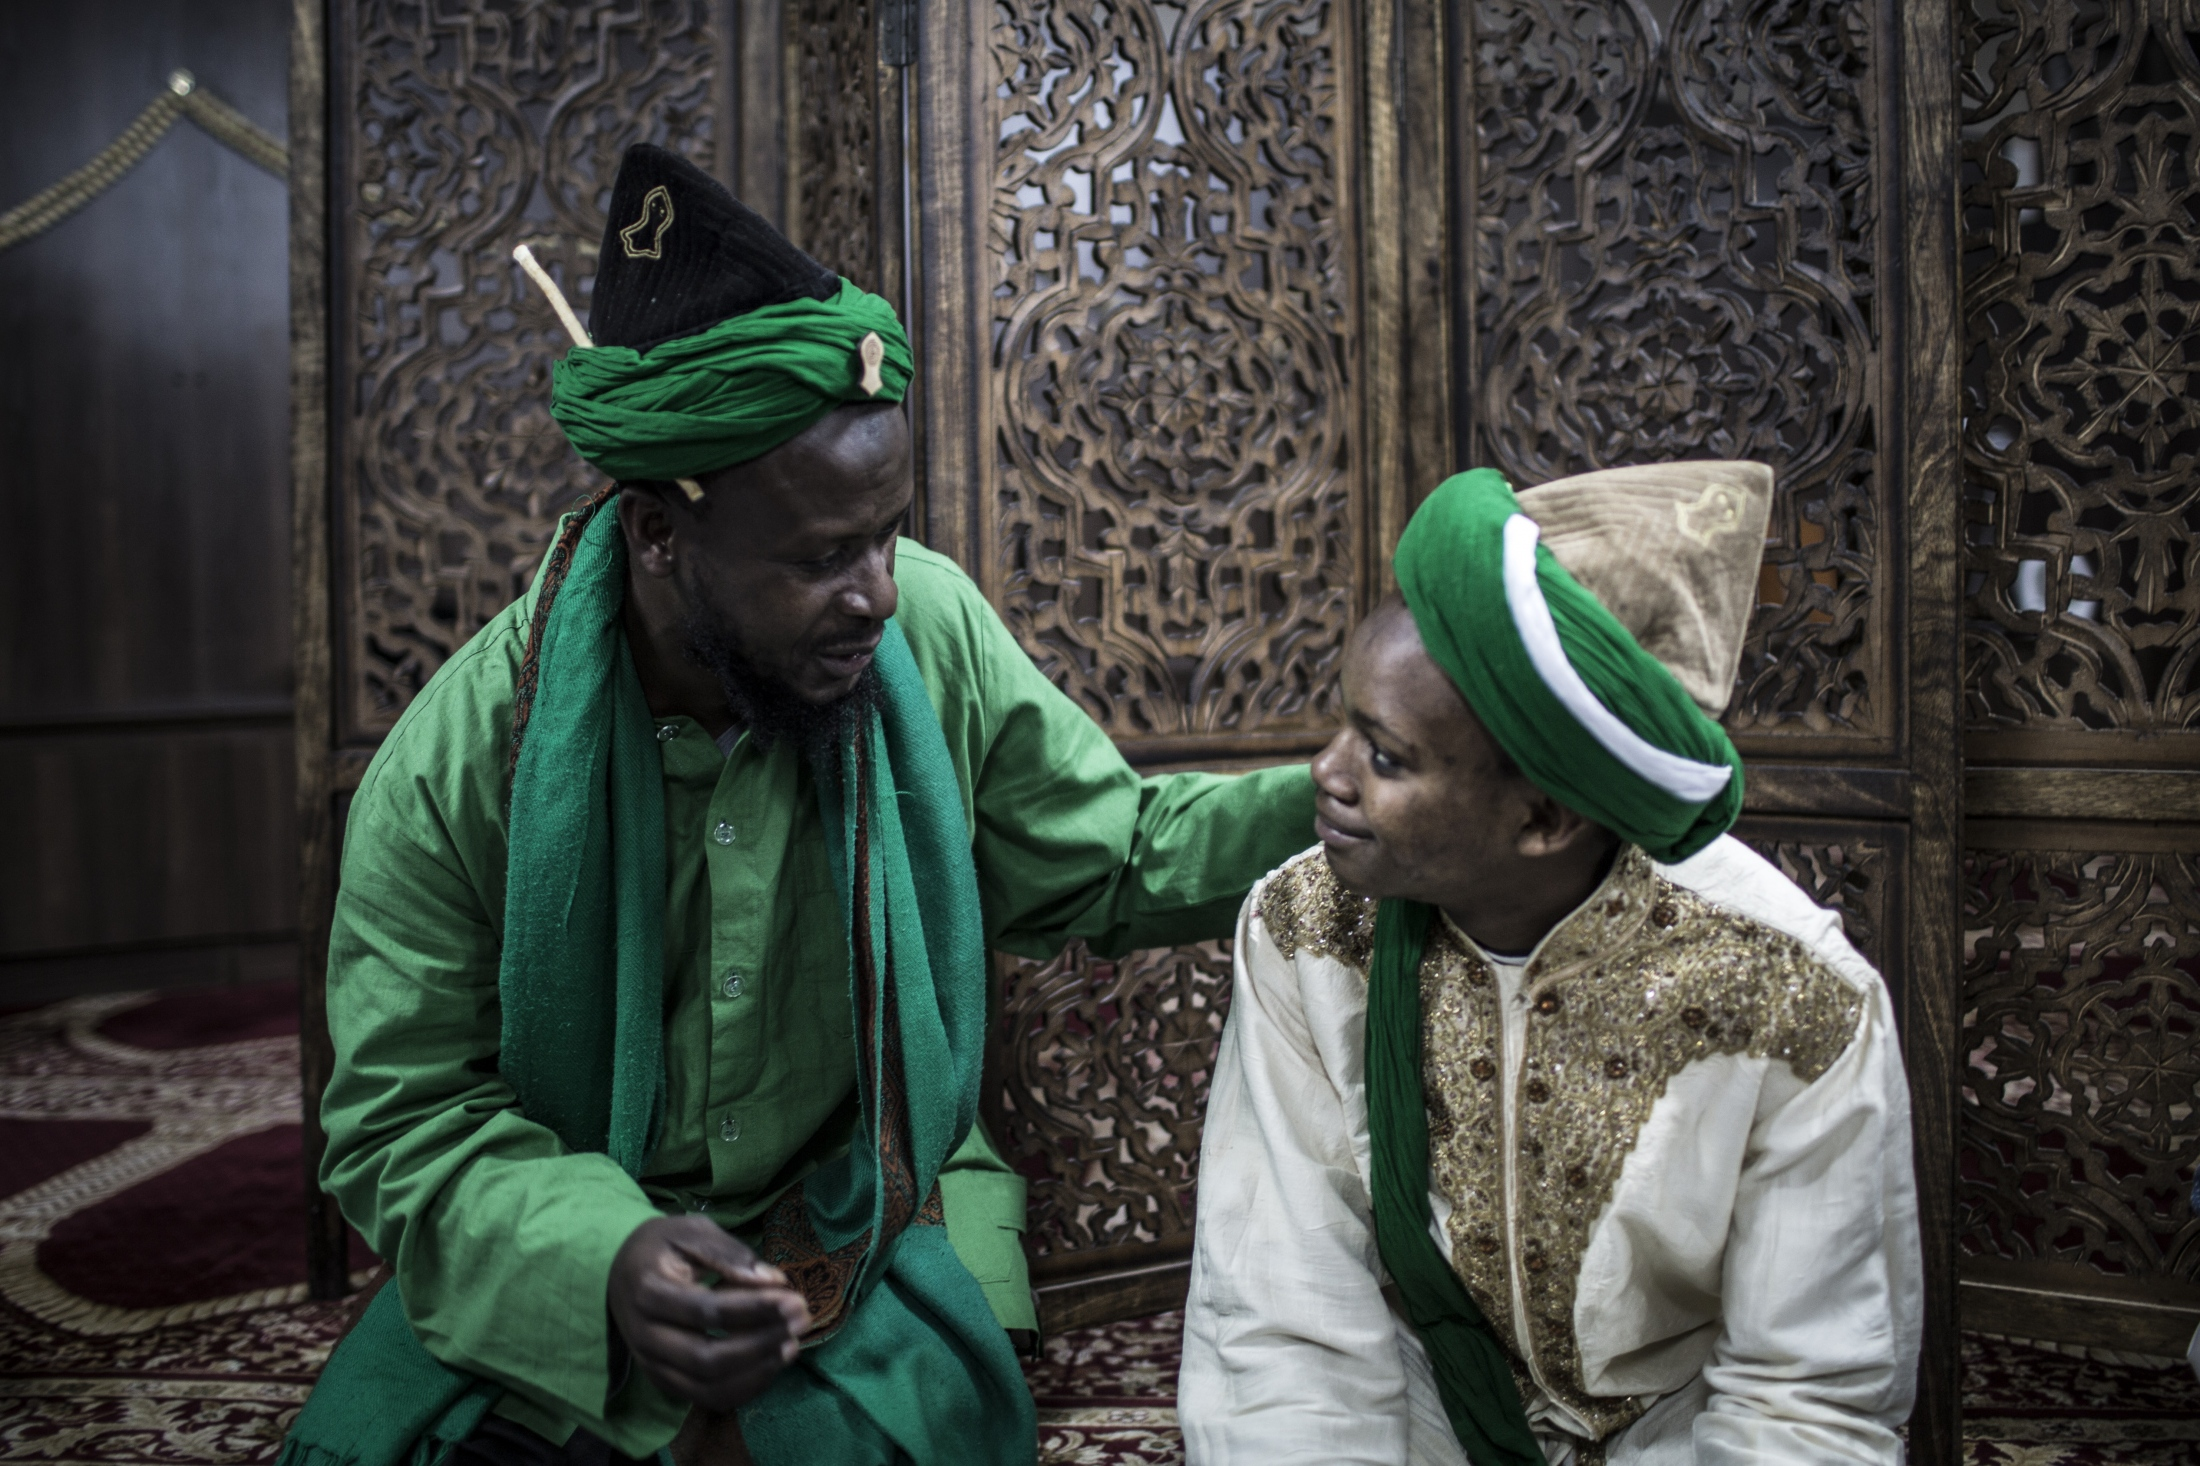 Muhammad Ata (47) (L) and Cassim (17) from Diepkloof, Soweto talk to each other at an iftaar meal at the Naqshabandi Centre.  The centre is rooted in the teachings of Sufism which practices among many things the deep introspection and the embracing of the divine presence of God, the concept of oneness and spiritual connection between all of the living.